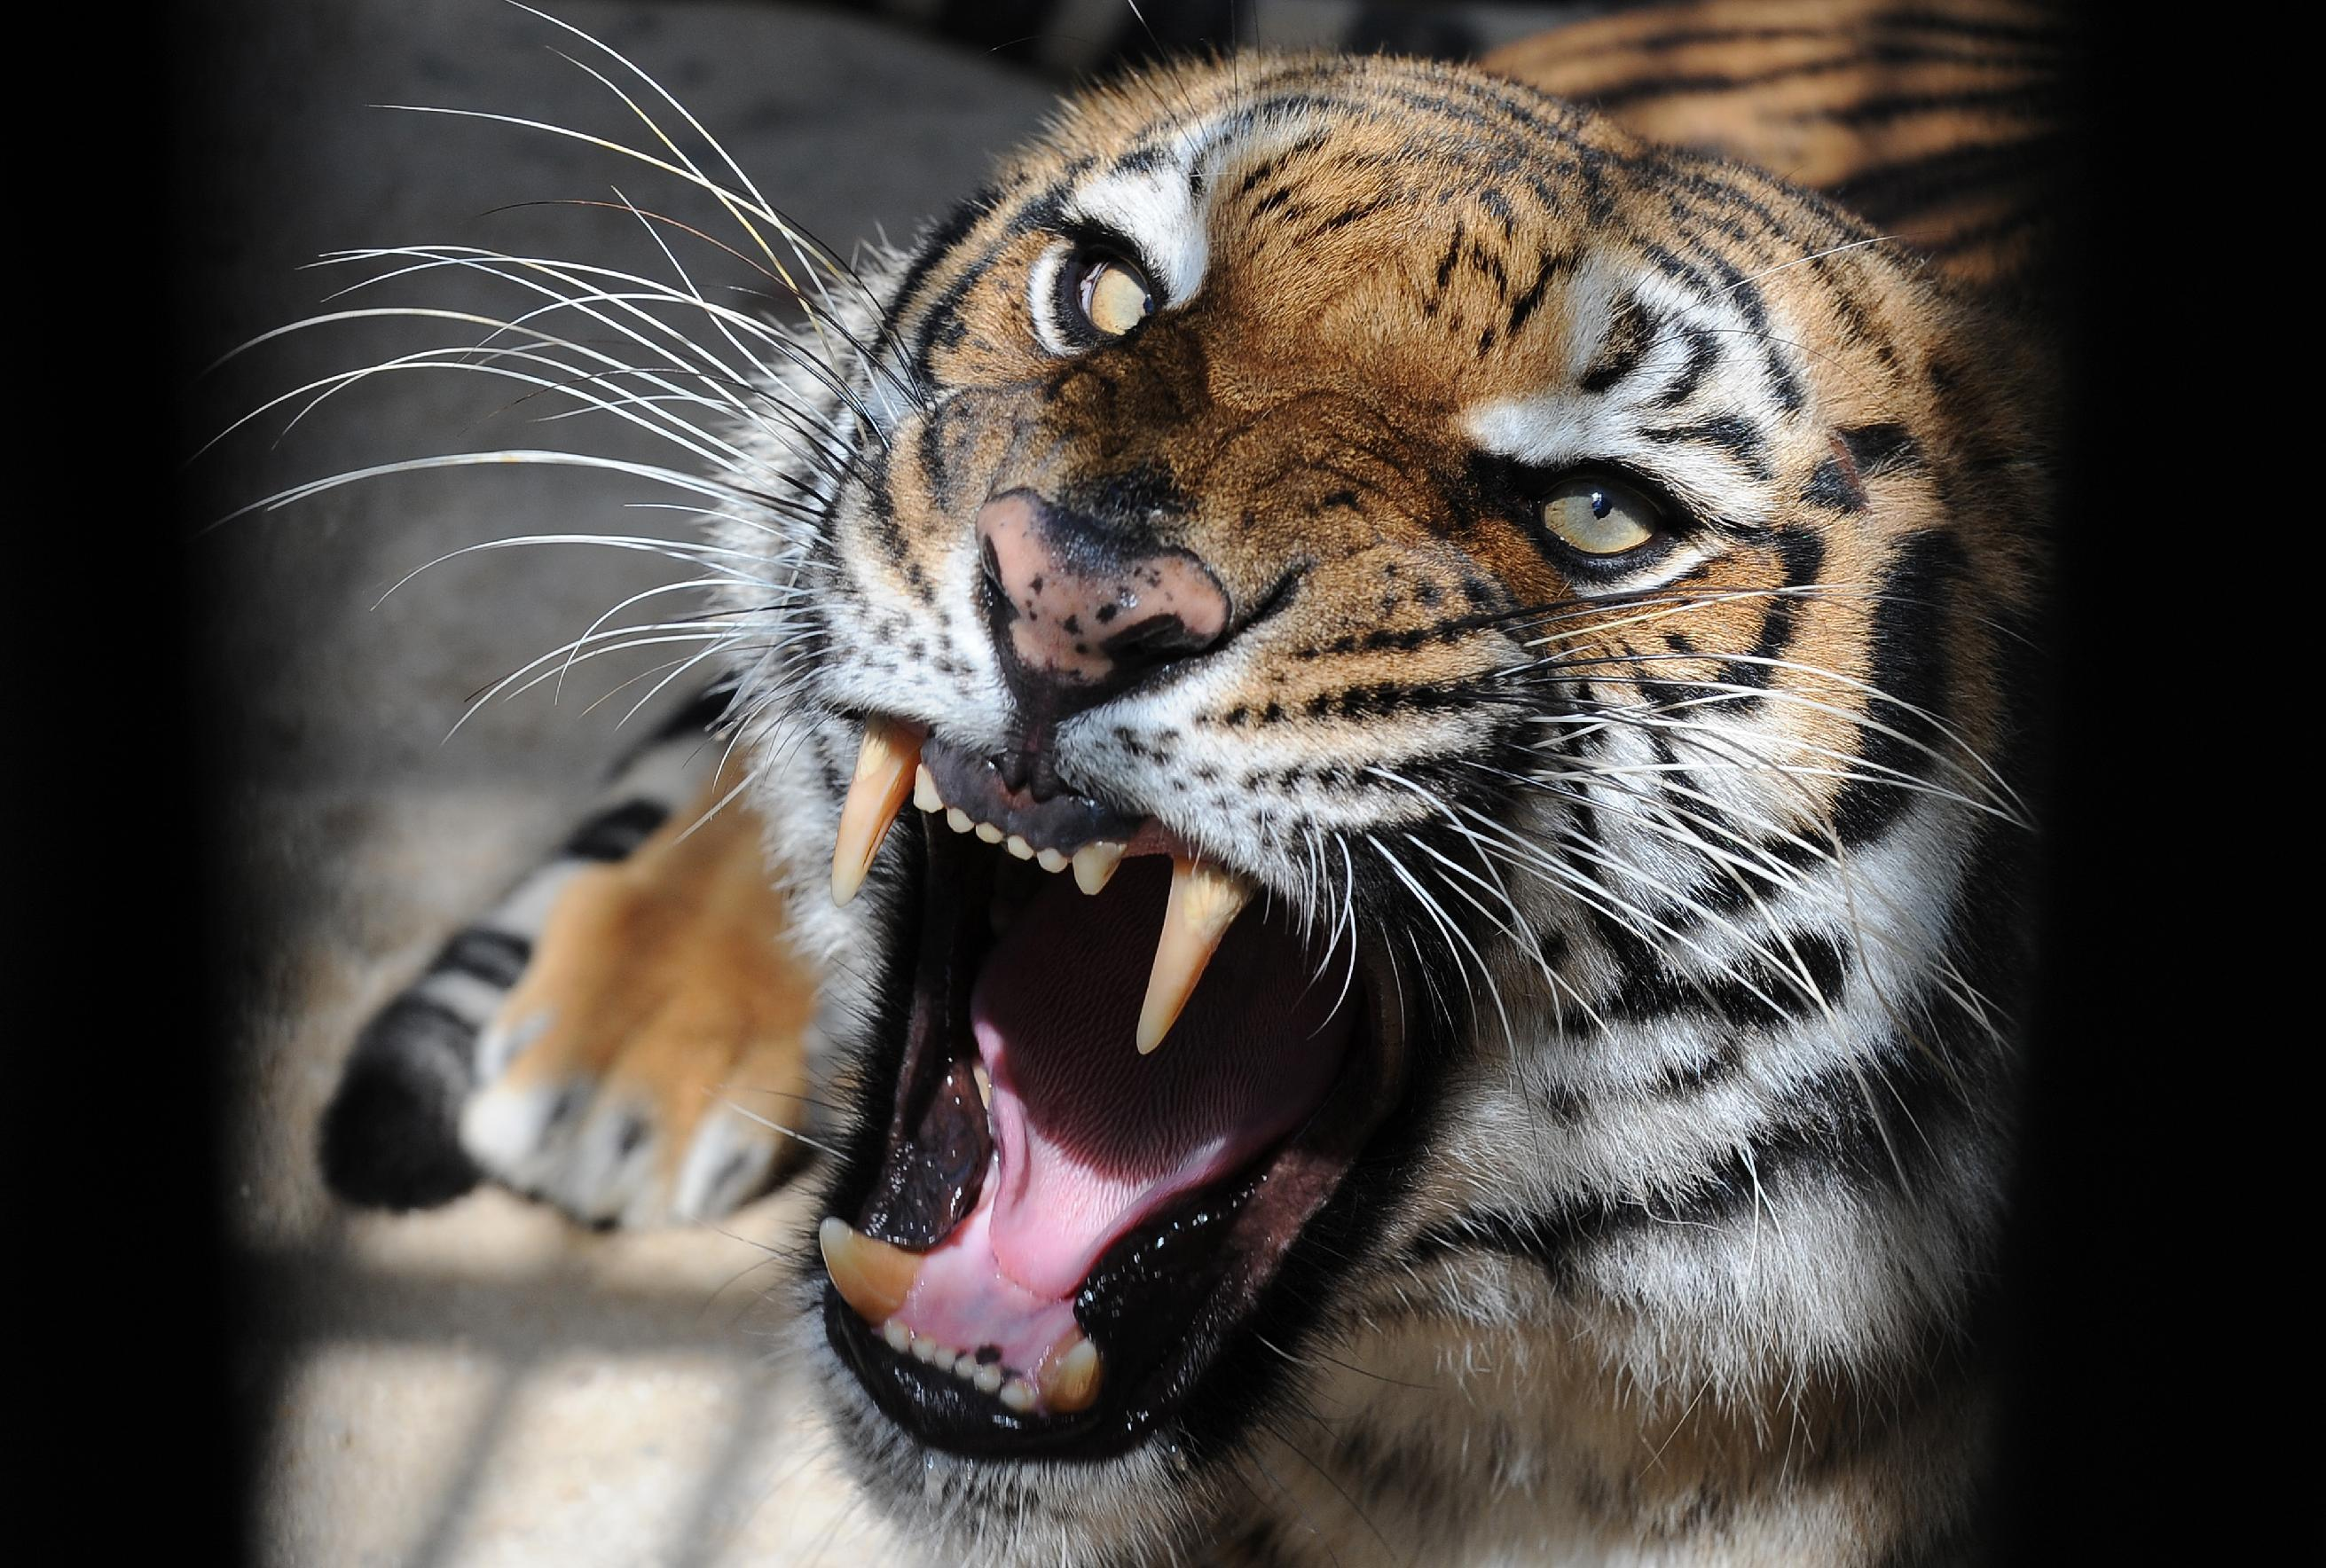 A local resident alerted police after spotting a tiger in a supermarket car park on the outskirts of Paris (AFP Photo/)